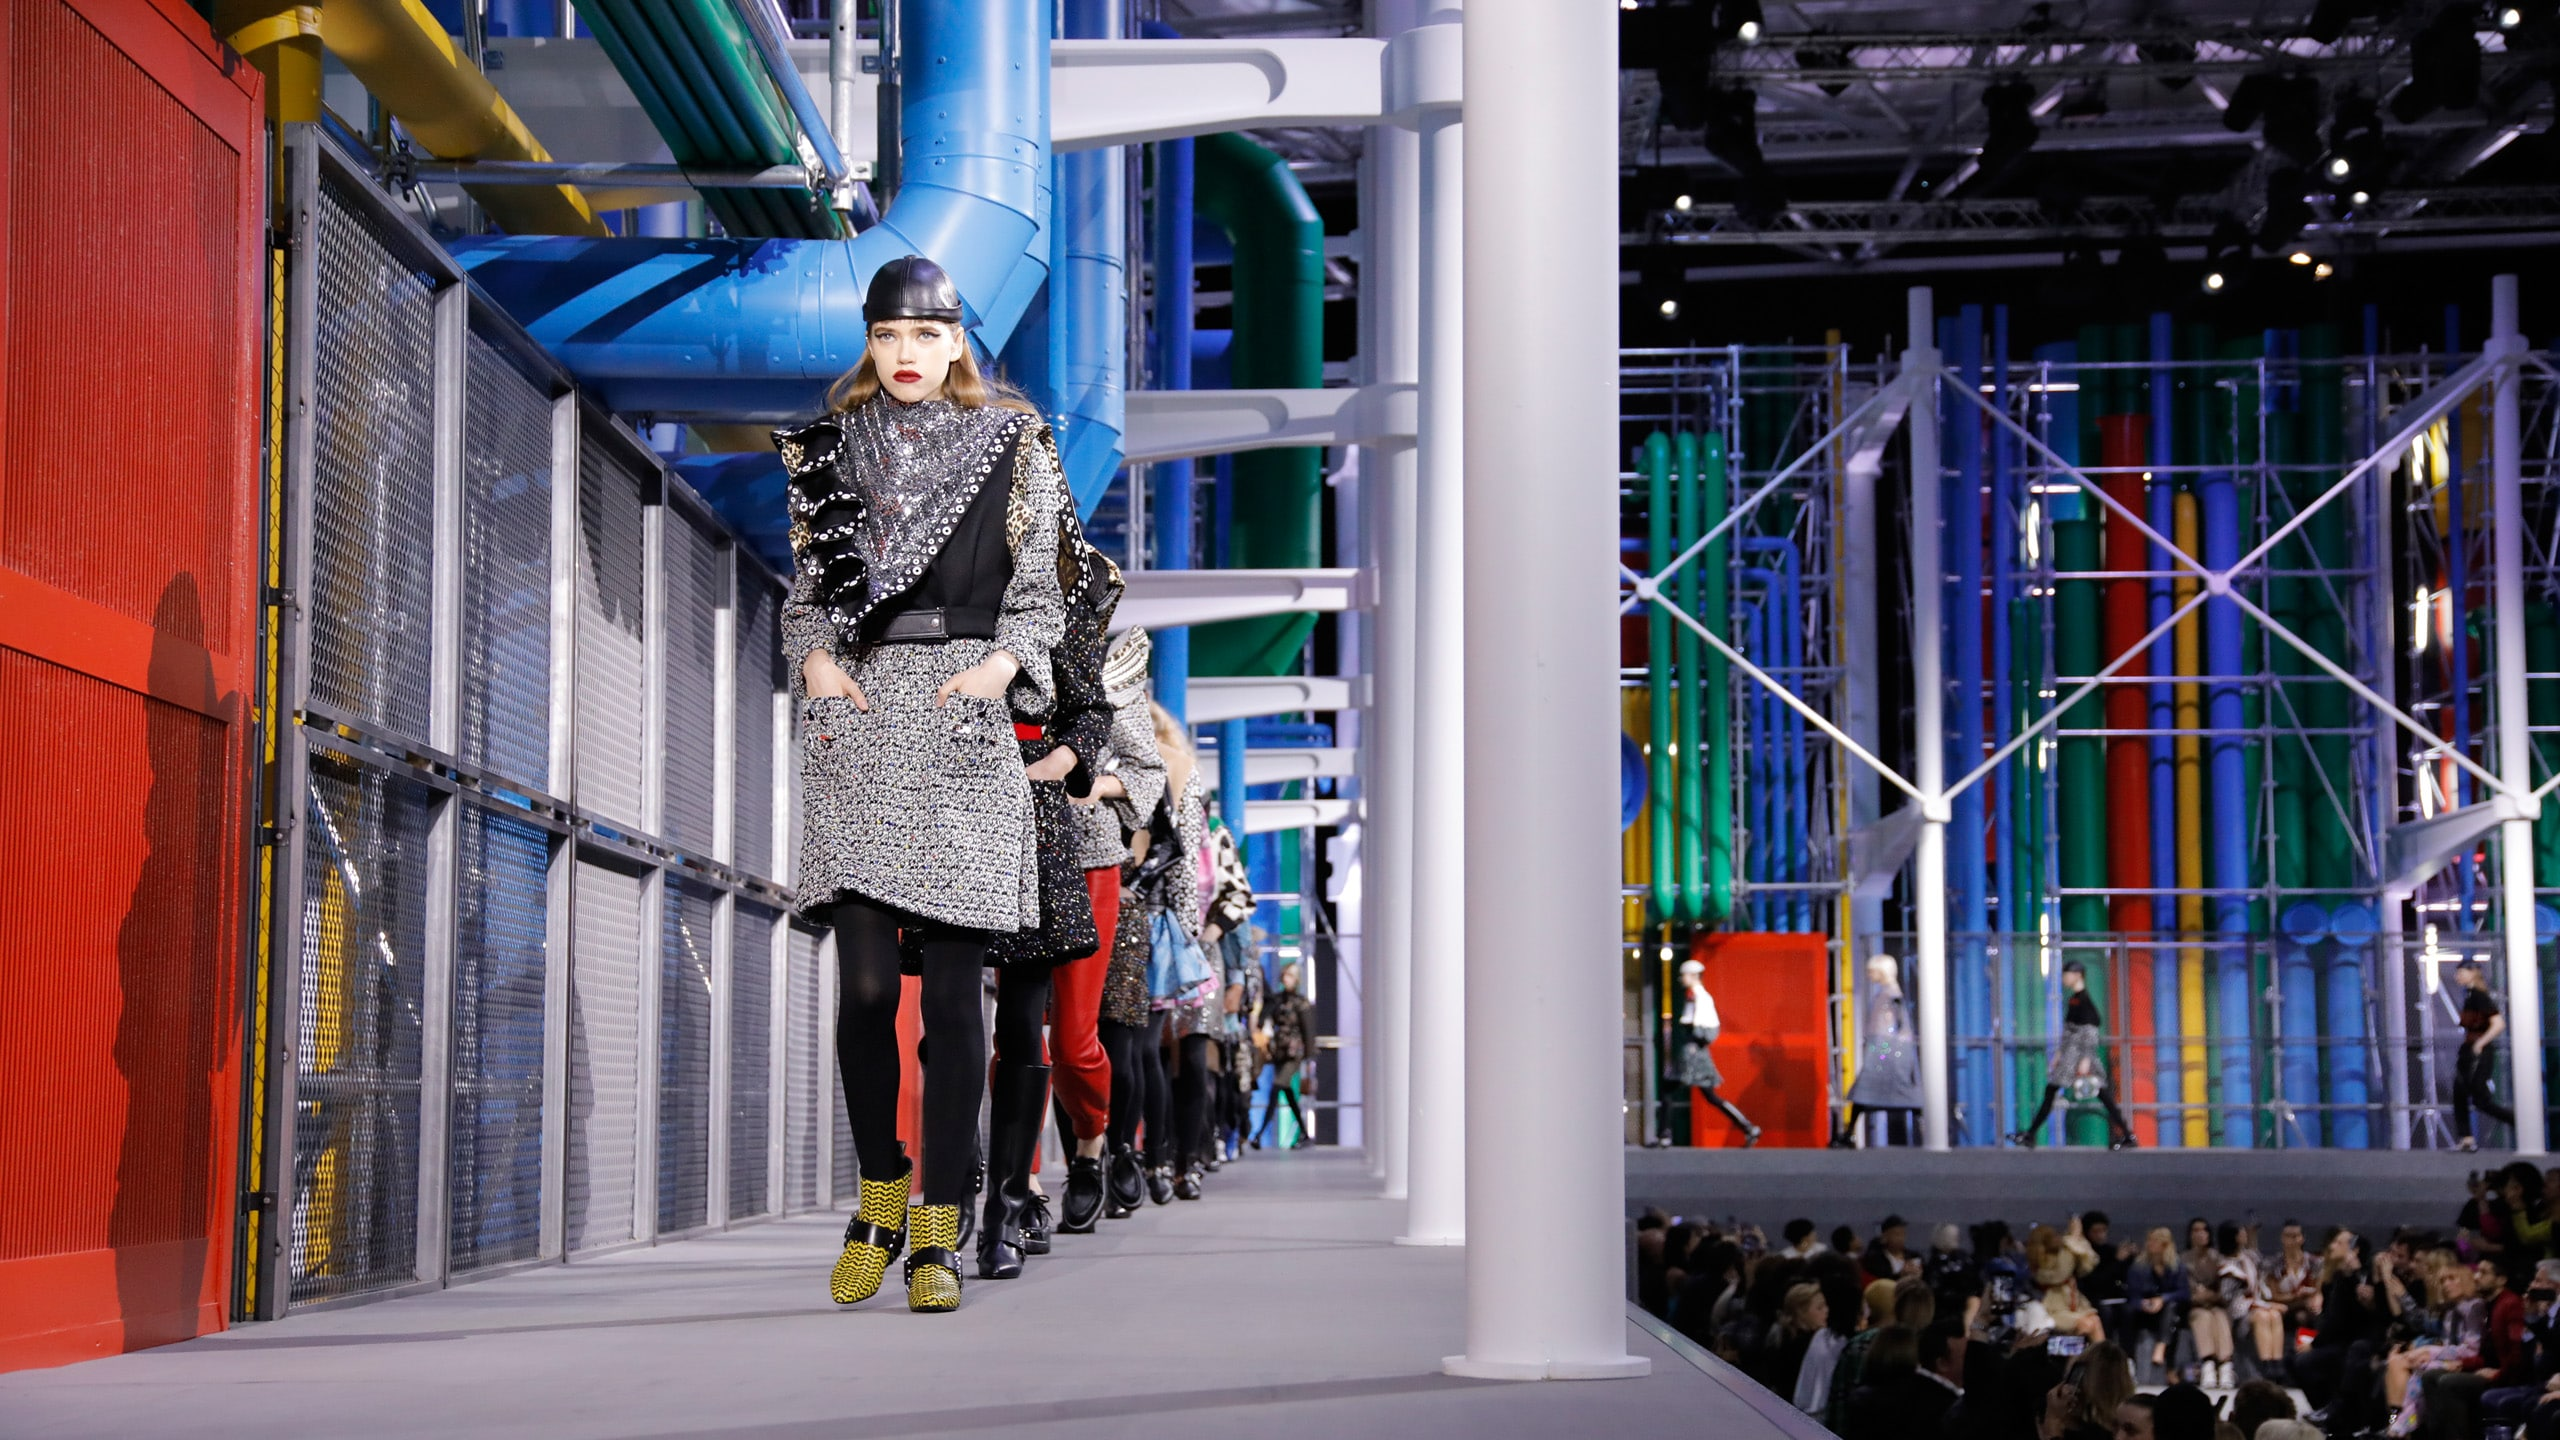 Livestream: Watch Louis Vuitton's Fall/Winter 2019 ready-to-wear fashion show, live from Paris